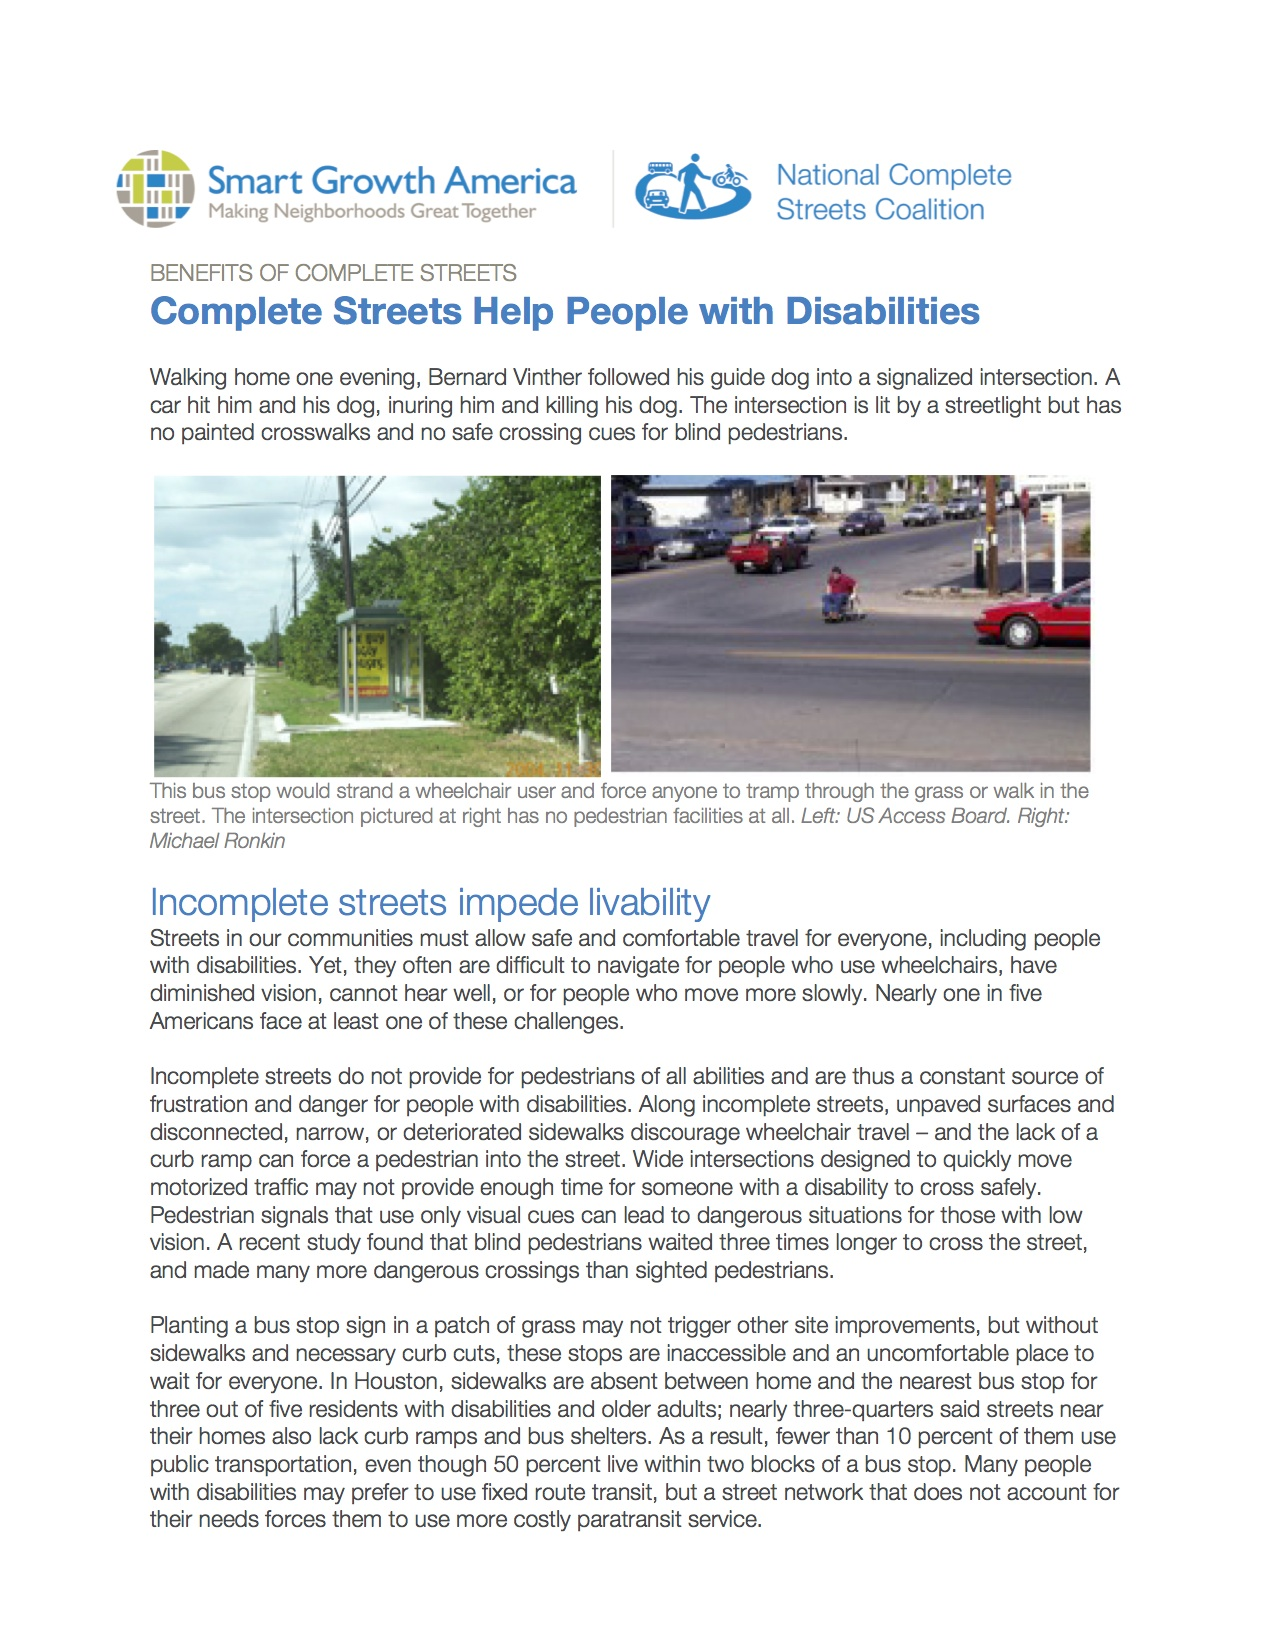 People with Disabilities: Benefits of Complete Streets